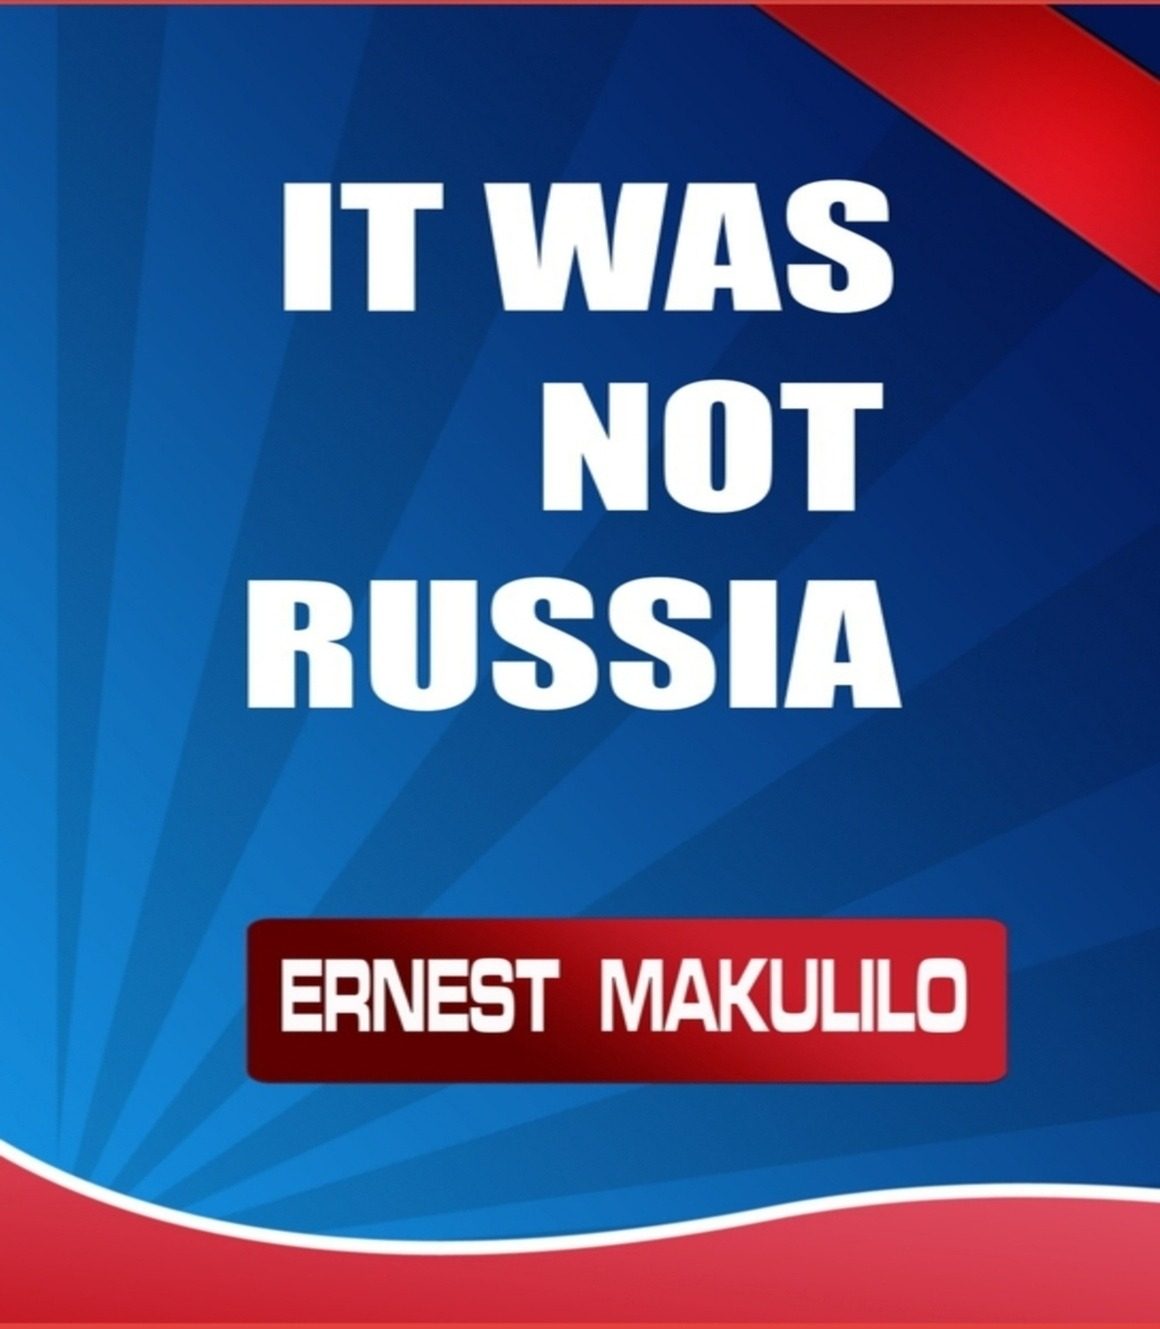 IT WAS NOT RUSSIA